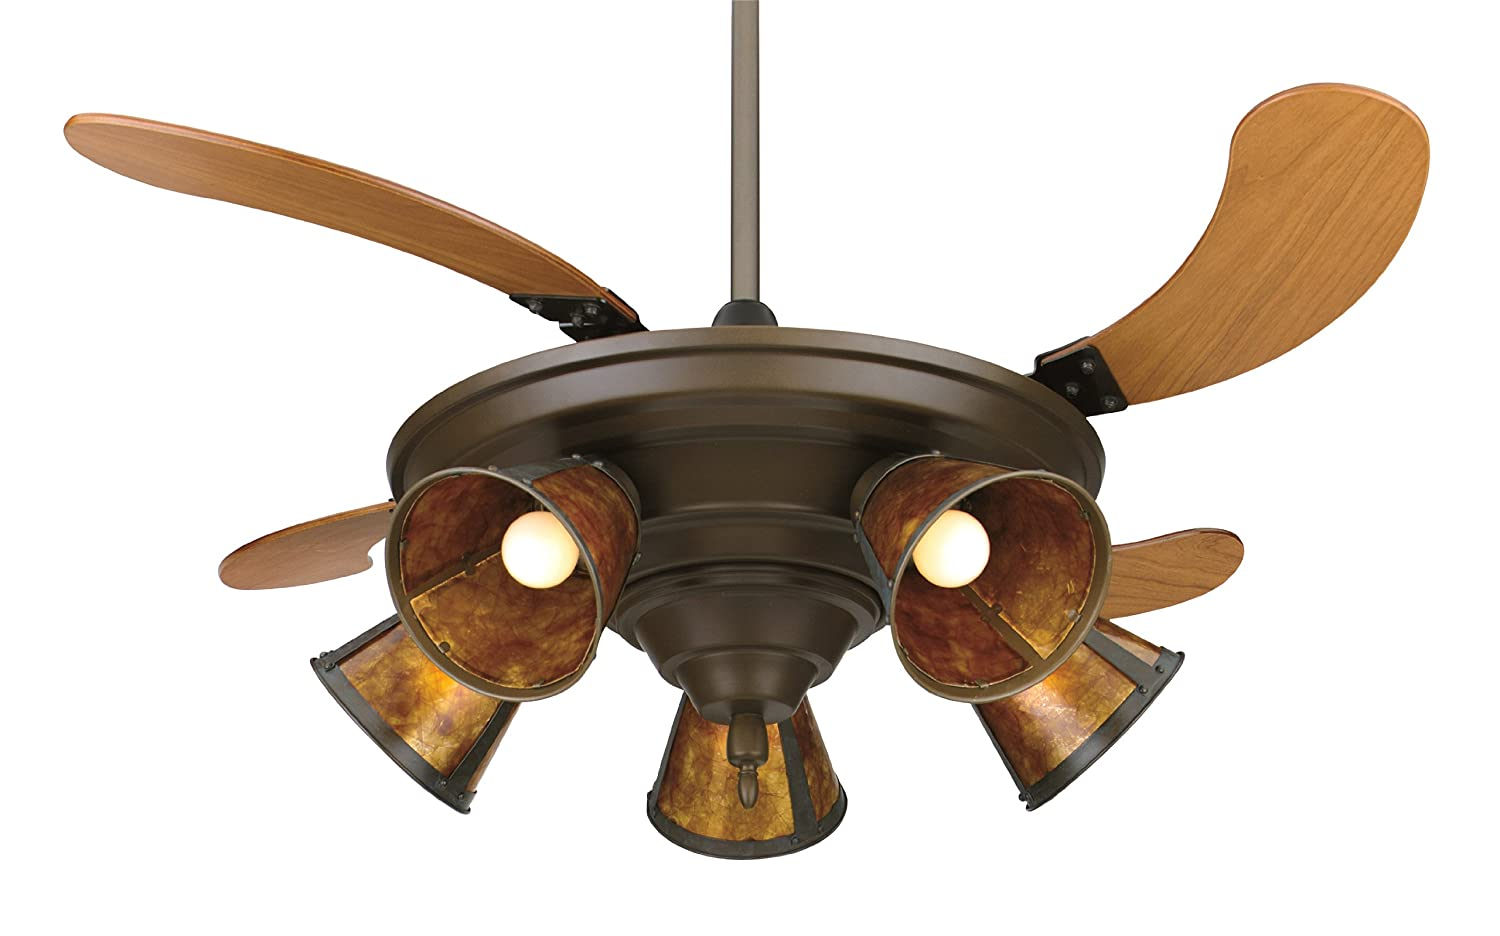 Fanimation fp825ob 43 inch air shadow traditional 5 blade ceiling fanimation fp825ob 43 inch air shadow traditional 5 blade ceiling fan oil rubbed bronze amazon aloadofball Image collections